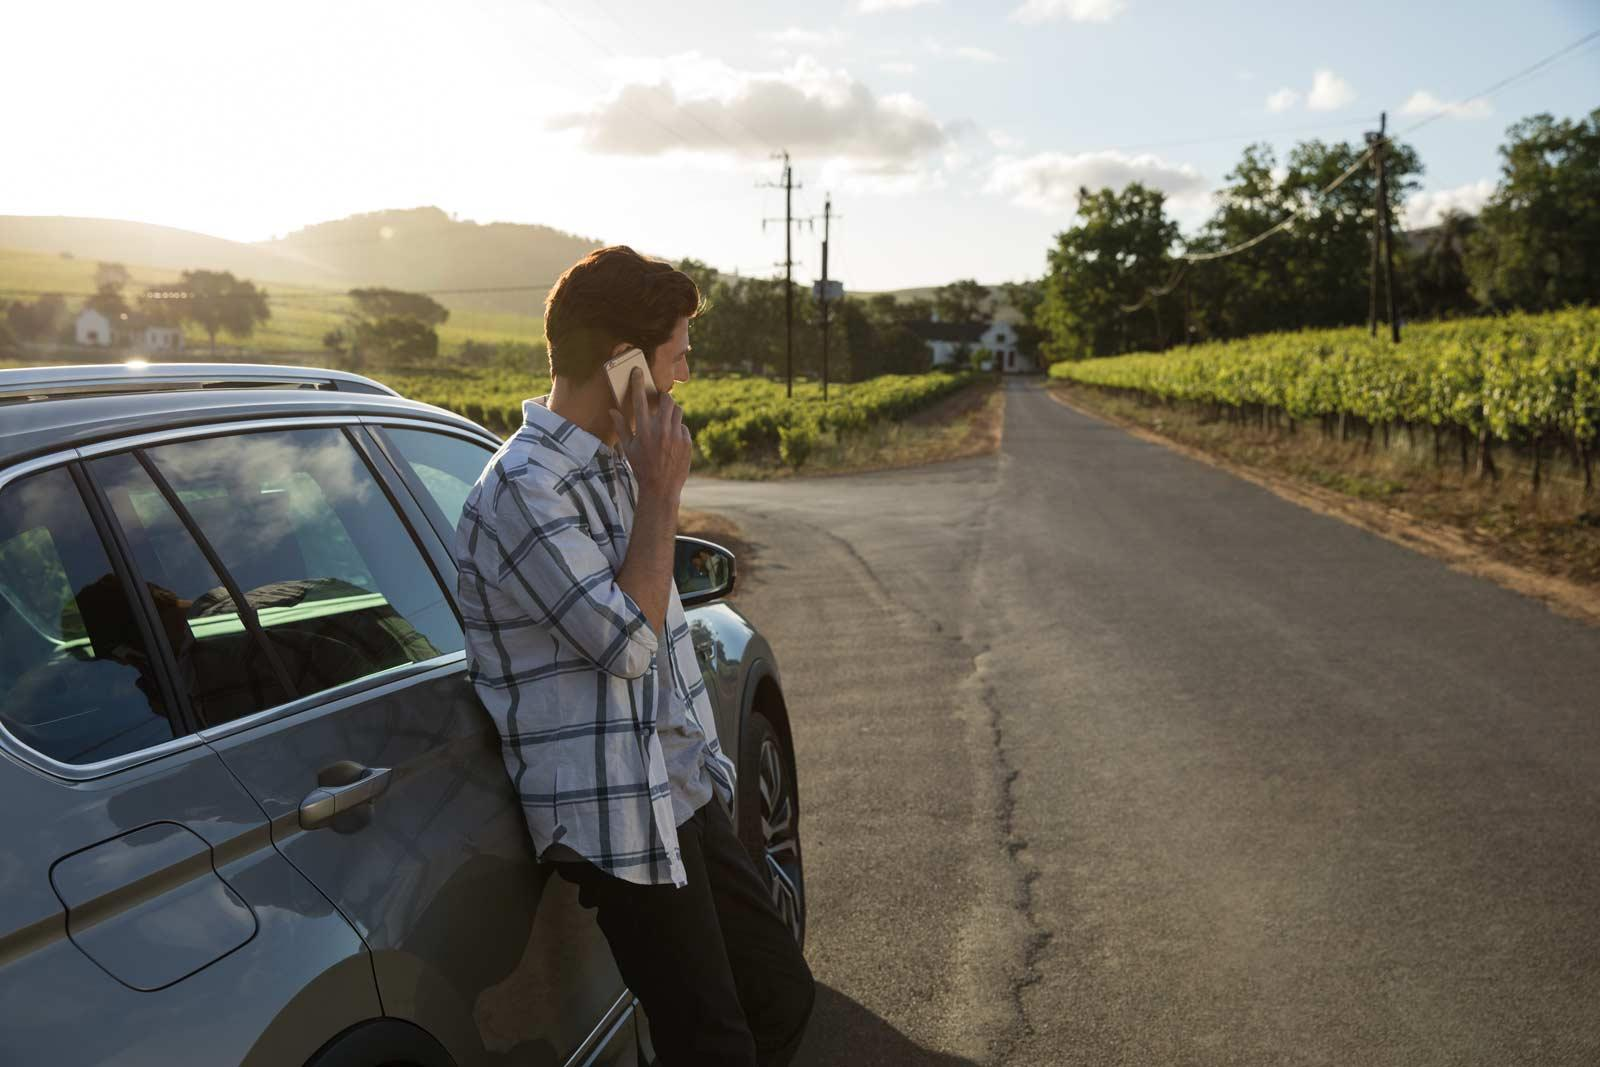 man-standing-next-to-car-with-mobile-phone